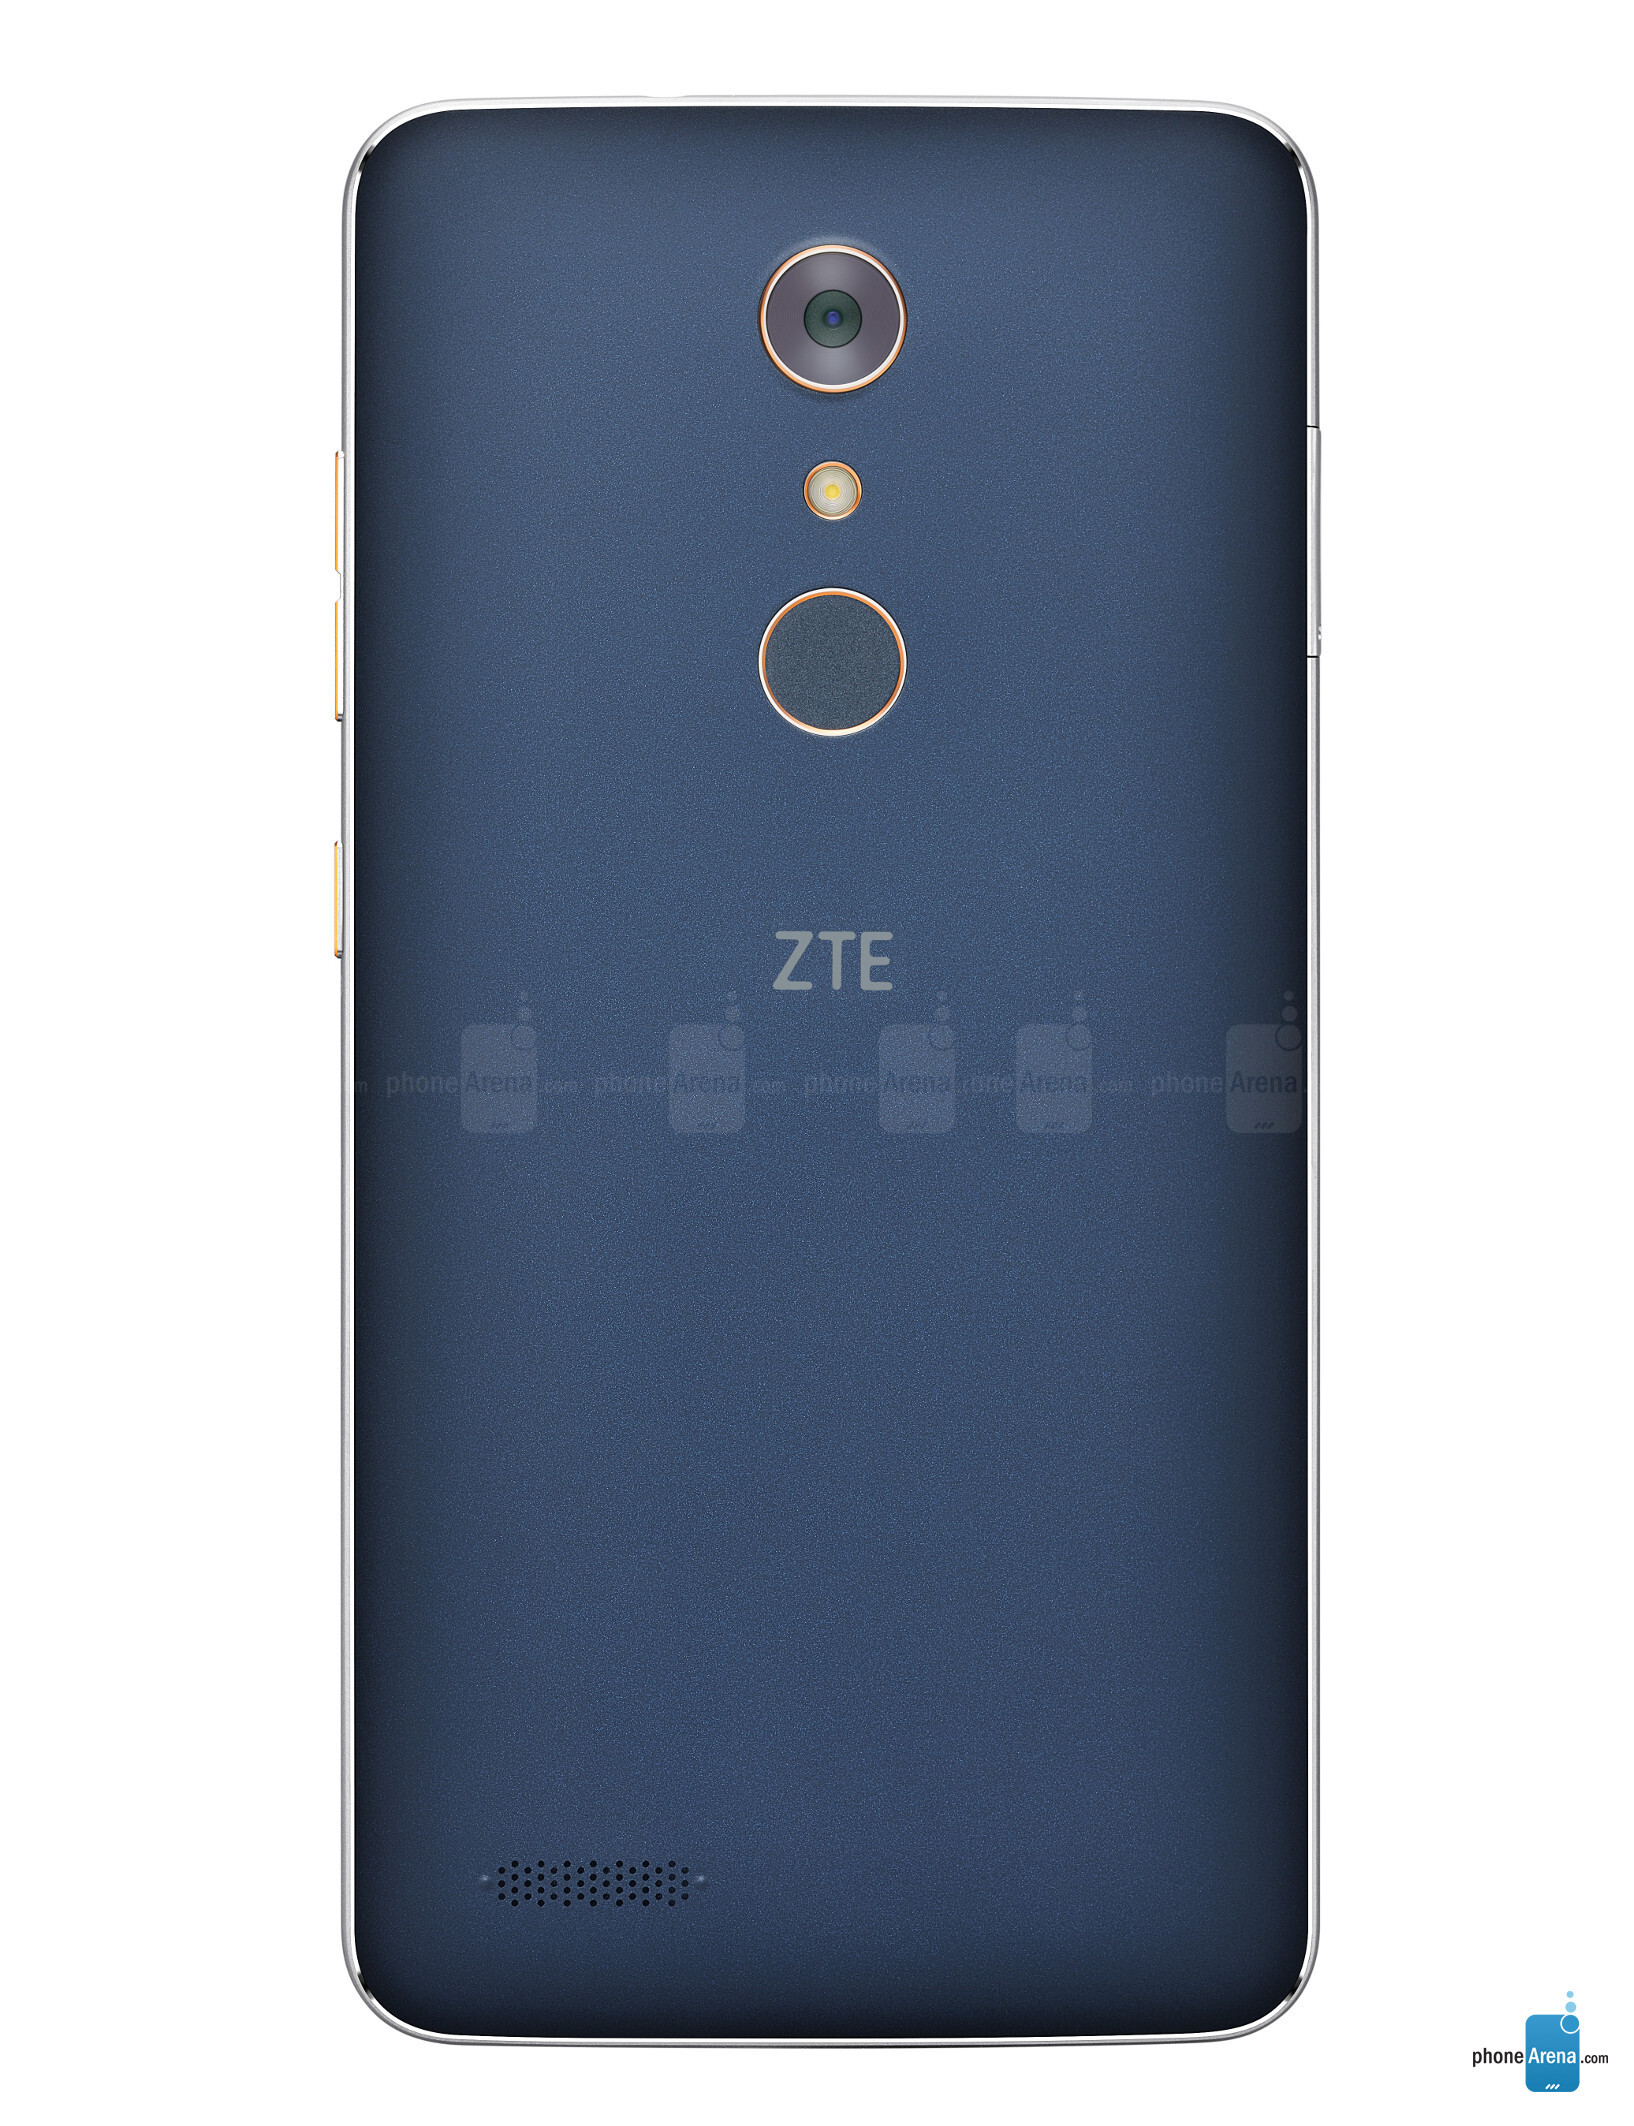 Durga Complex, zte zmax pro specs and features cheap Metoprolol